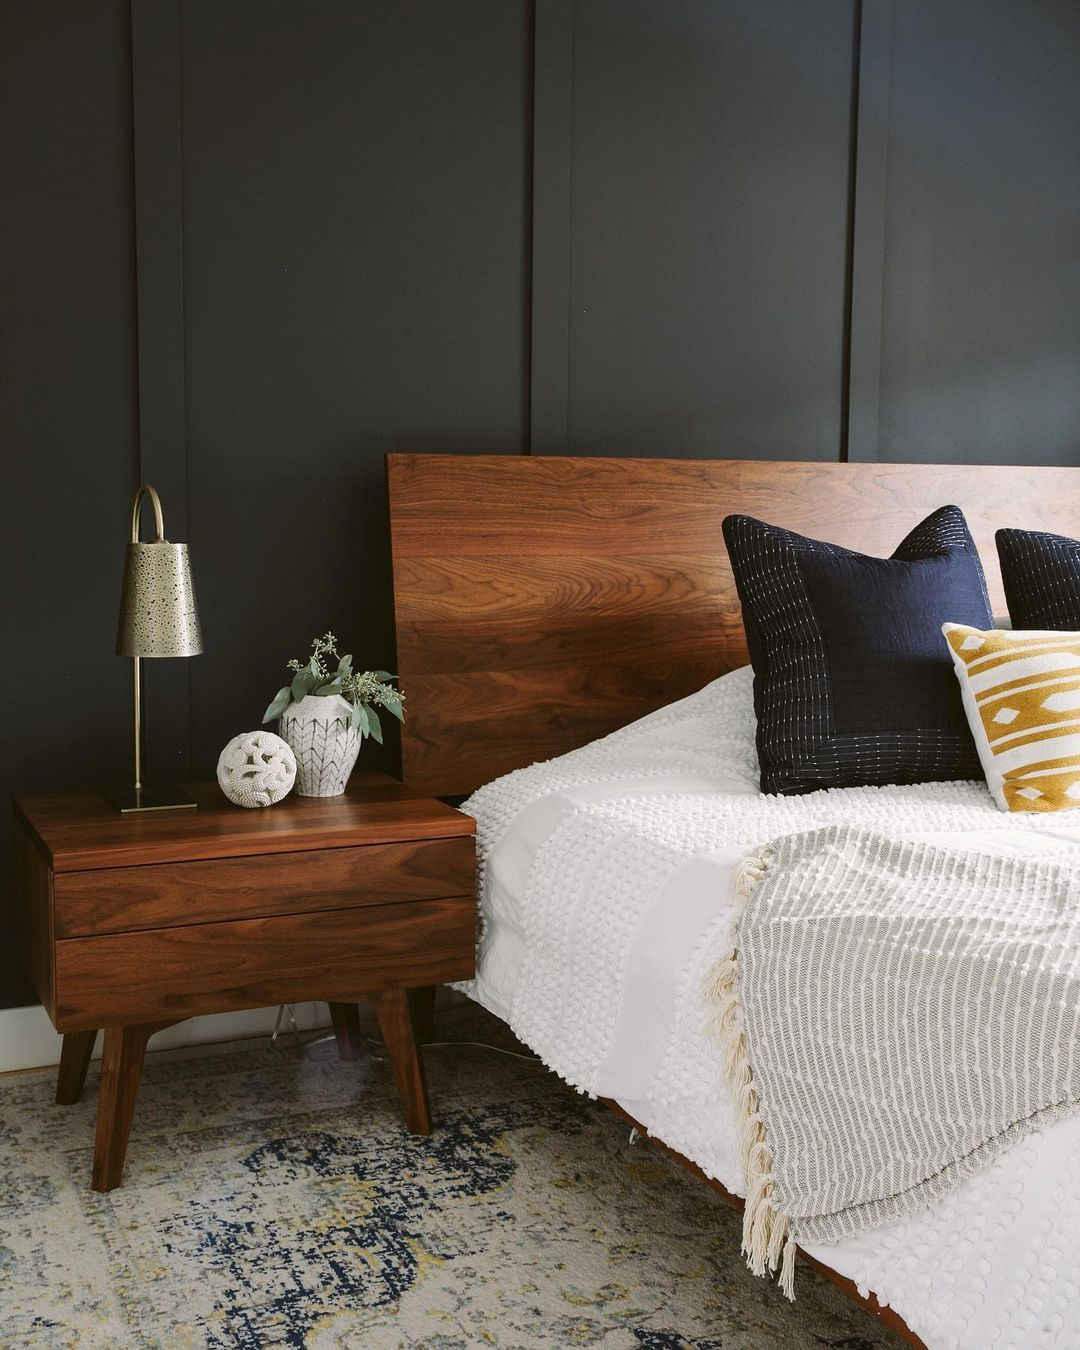 Master Bedroom Ideas for a Cozy Home Design in 2021   Wall decor bedroom, Cozy master bedroom ...